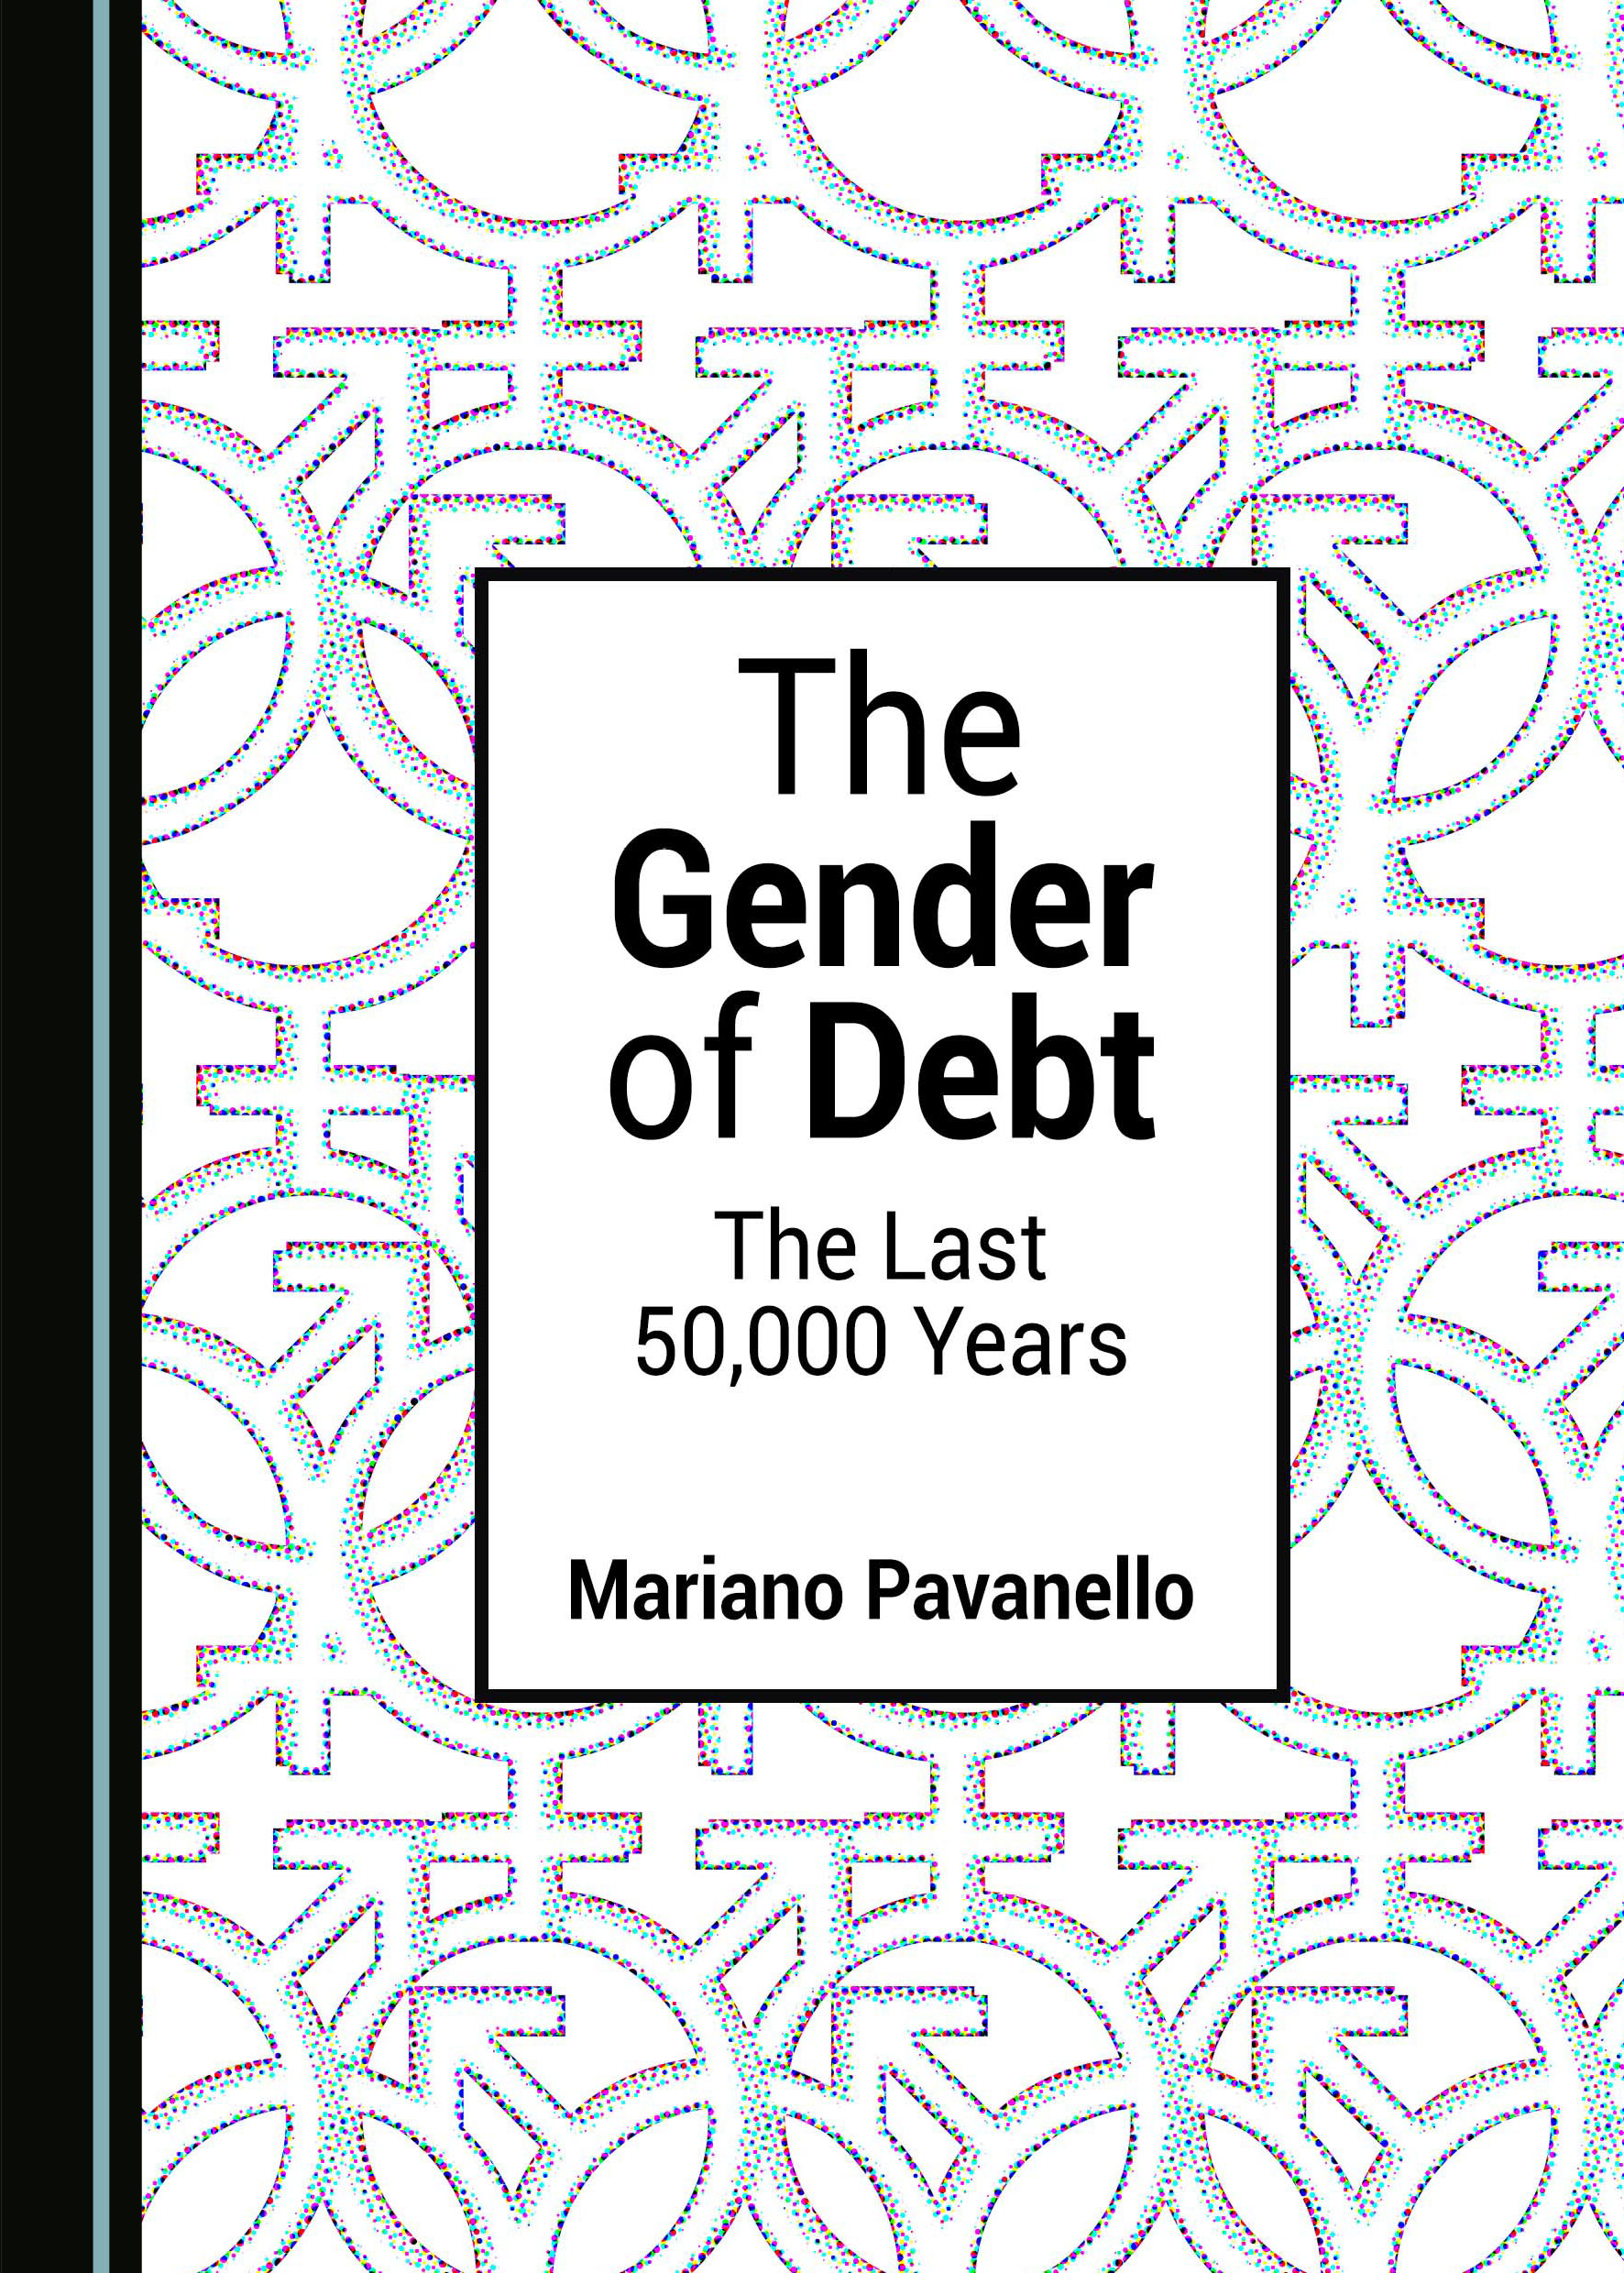 The Gender of Debt: The Last 50,000 Years